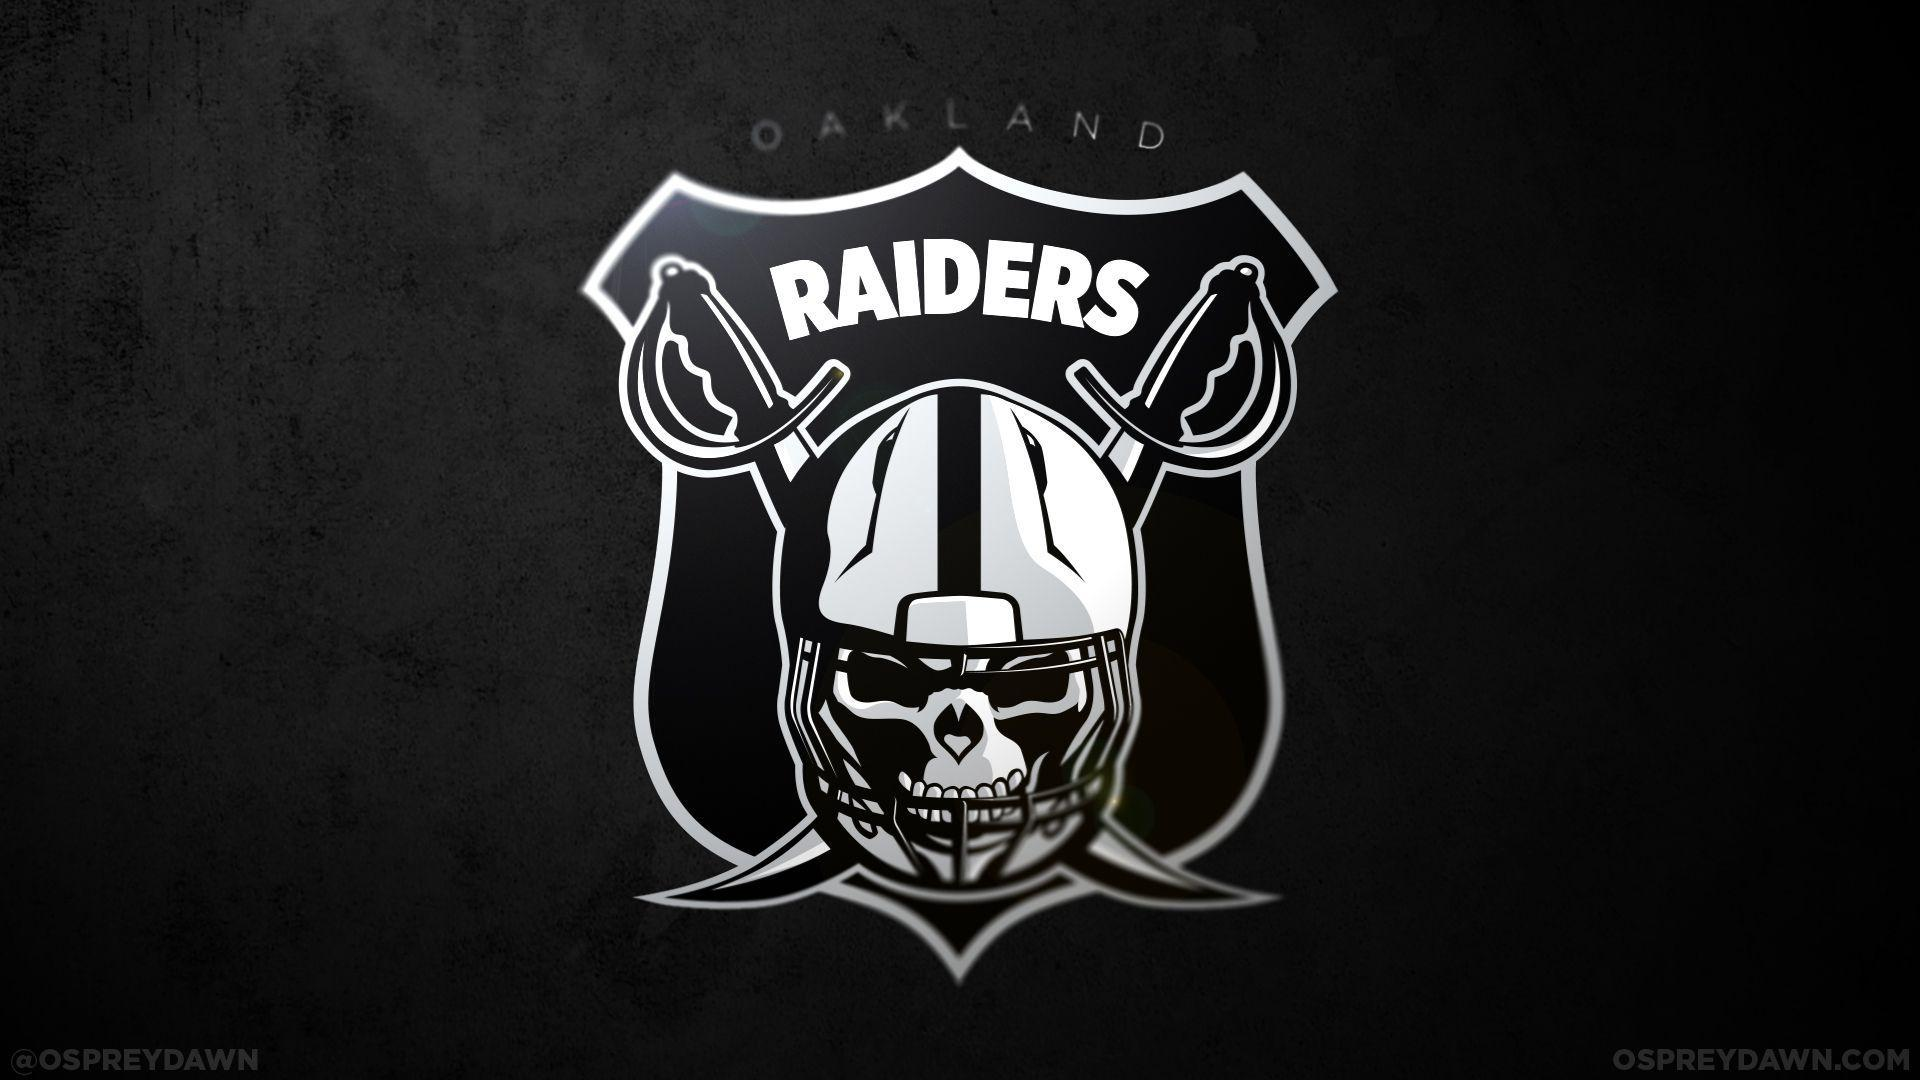 Oakland Raiders wallpaper uhd